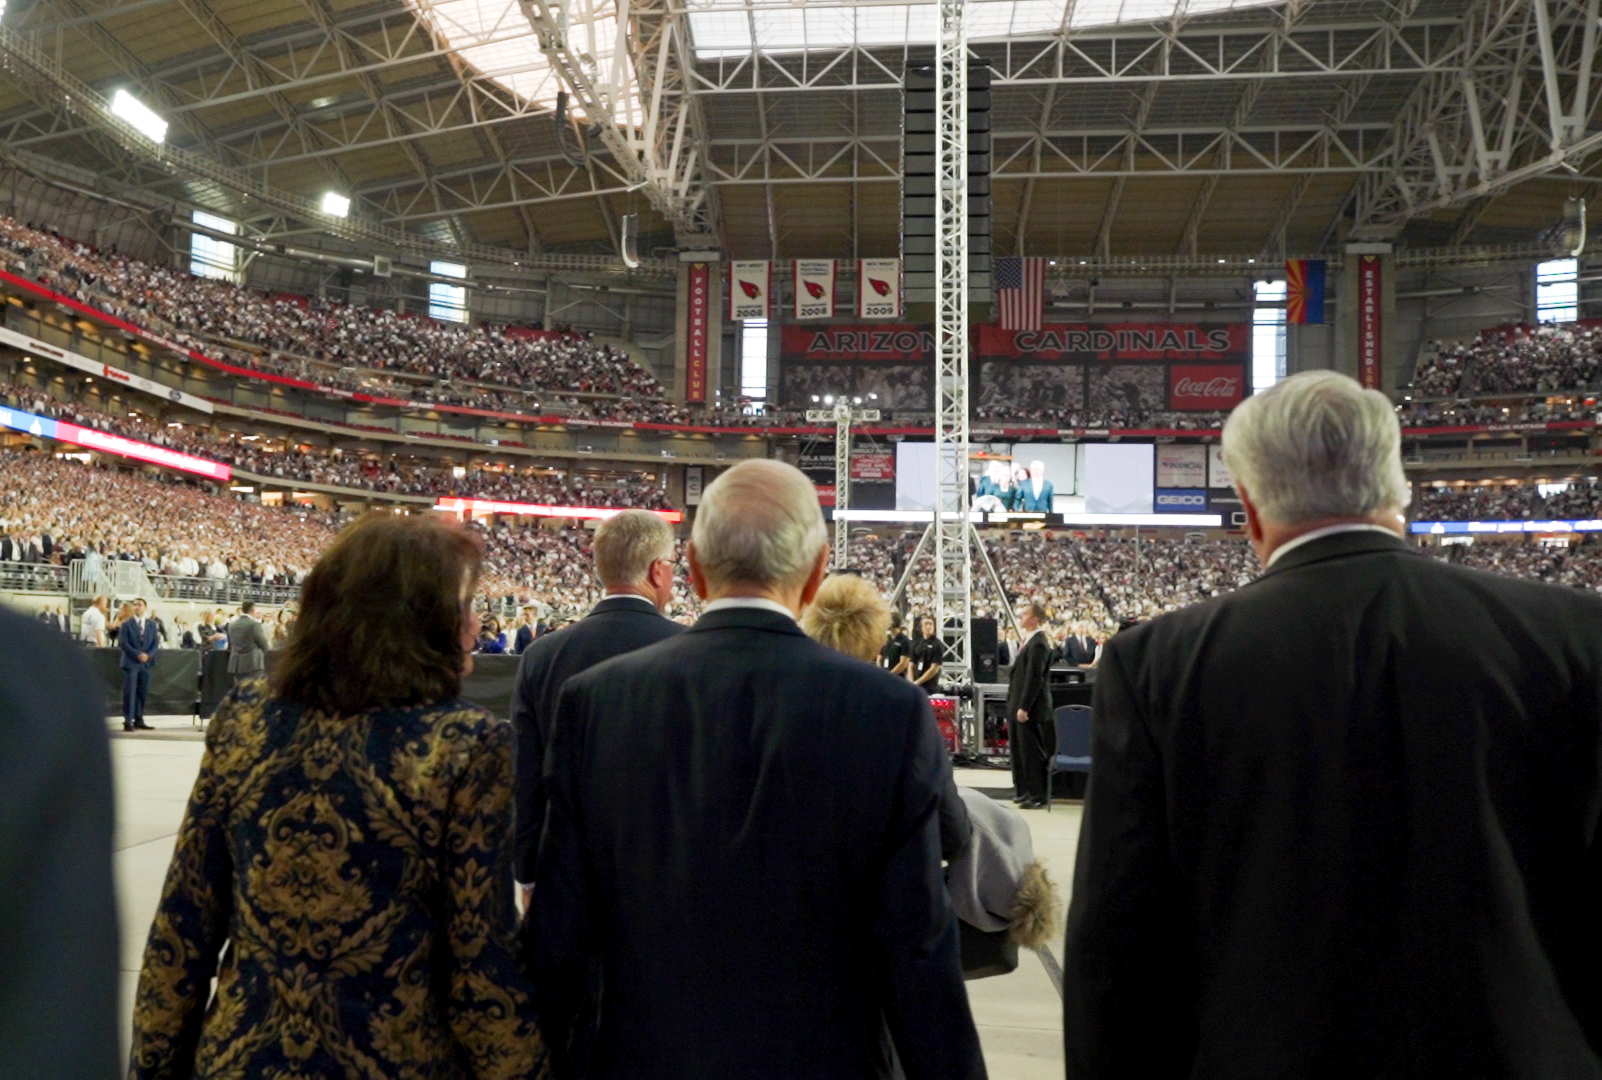 President Russell M. Nelson of The Church of Jesus Christ of Latter-day Saints enters State Farm Stadium in Phoenix on Sunday, Feb. 10, 2019. President Nelson is accompanied by his wife, Sister Wendy Nelson; President Dallin H. Oaks, first counselor in the Church's First Presidency; and his wife, Sister Kristen Oaks.